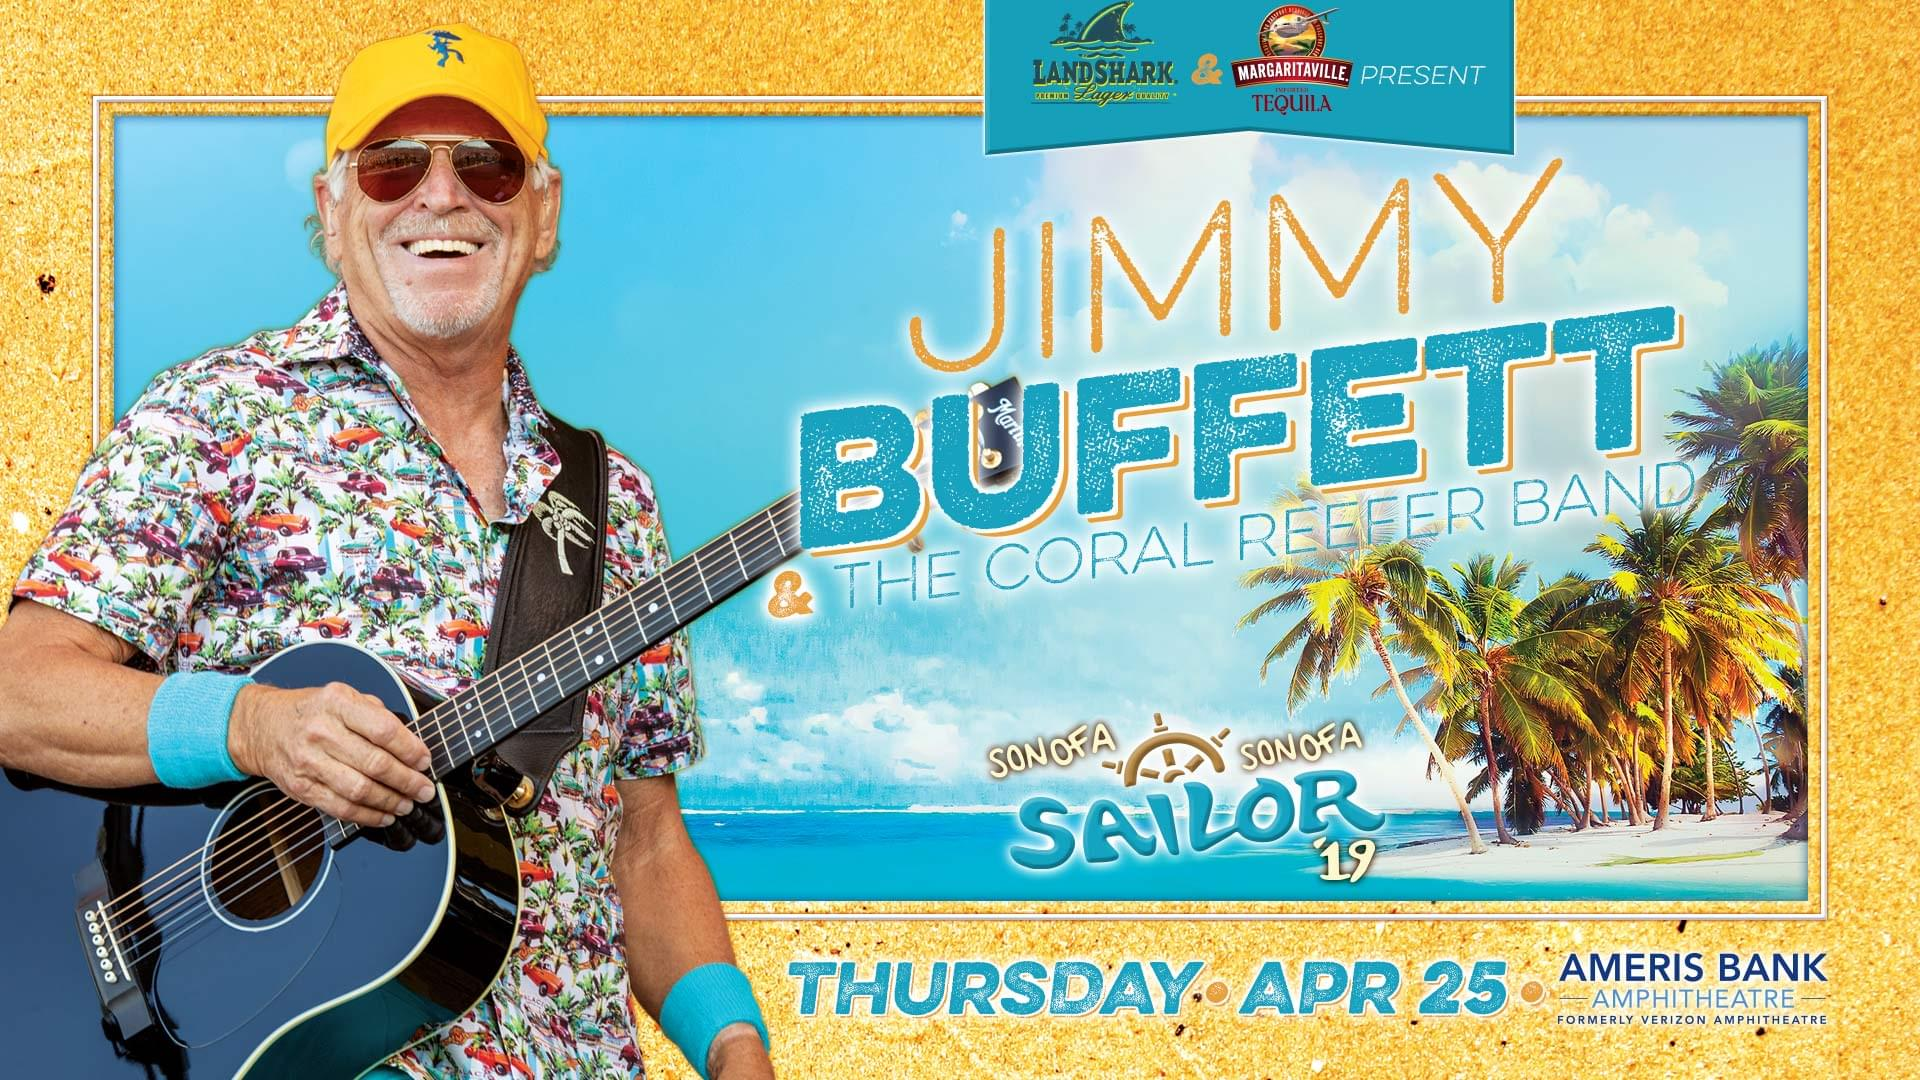 April 25 – Jimmy Buffett & The Coral Reefer Band